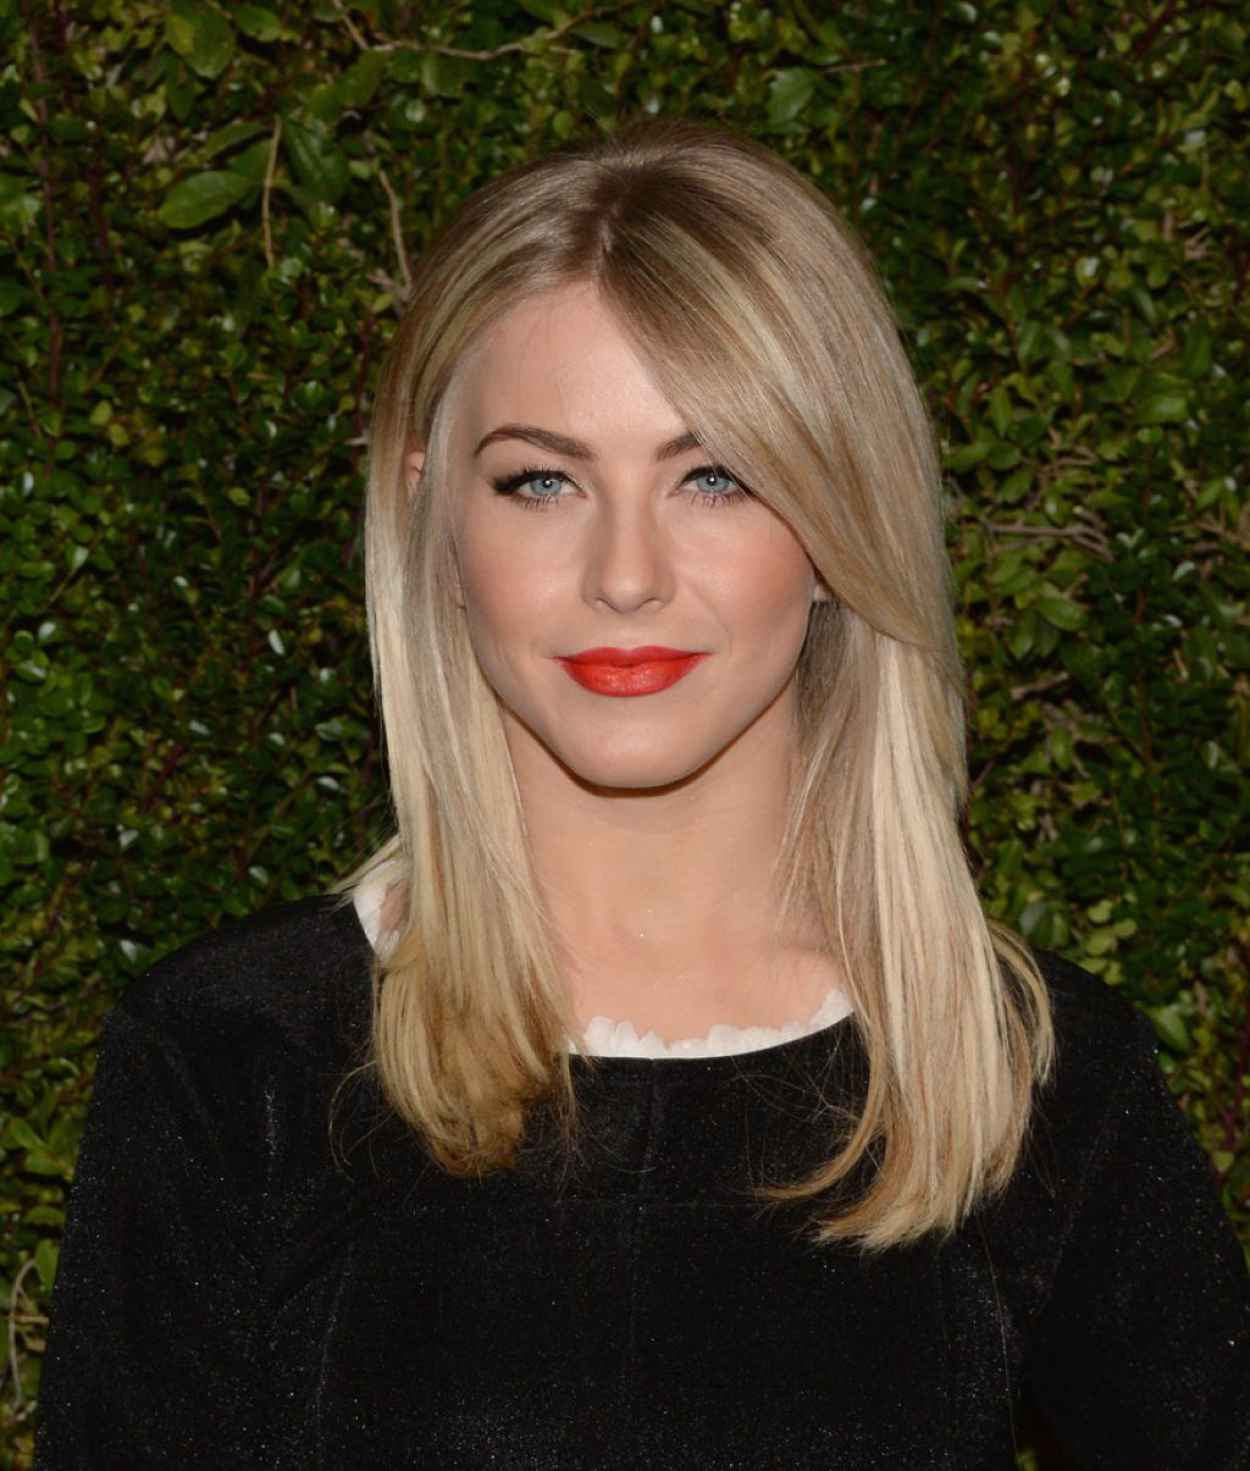 Julianne Hough - Drew Barrymores Photo Book at Chanel Boutique in Beverly Hills, January 2015-1